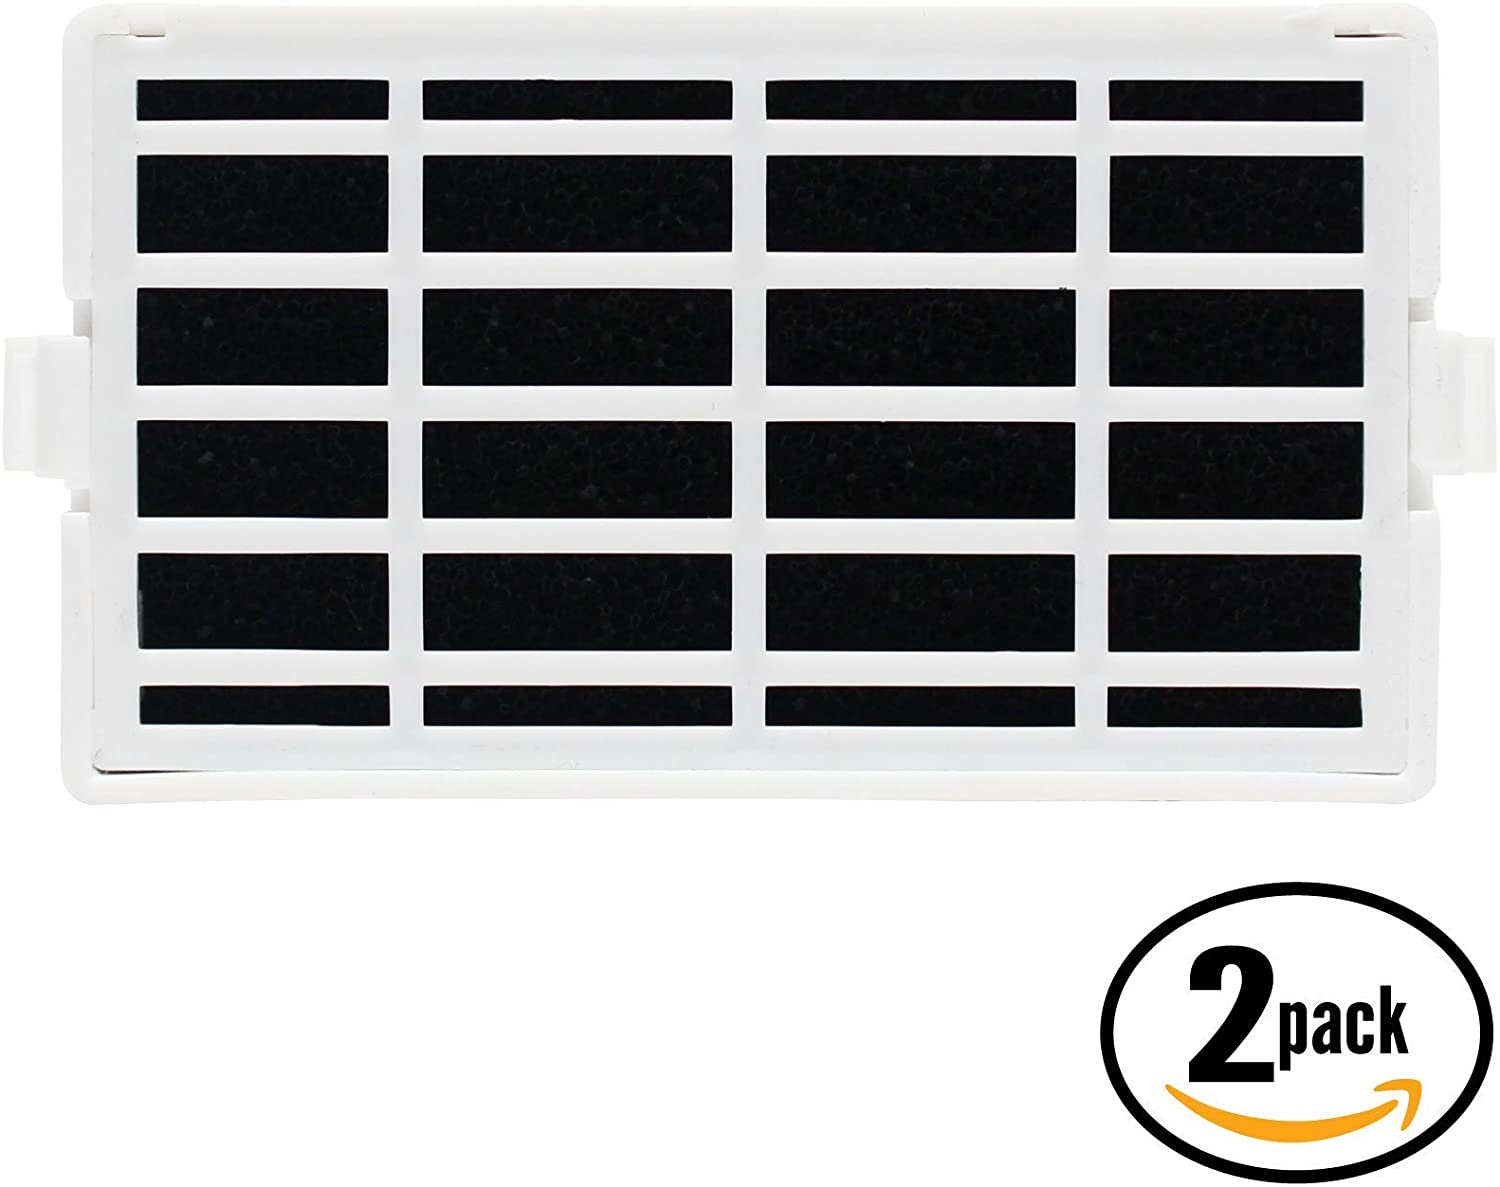 2-Pack Replacement for KSC24C8EYY03 Refrigerator Air Filter - Compatible with KitchenAid W10311524 AIR1 Fridge Air Filter